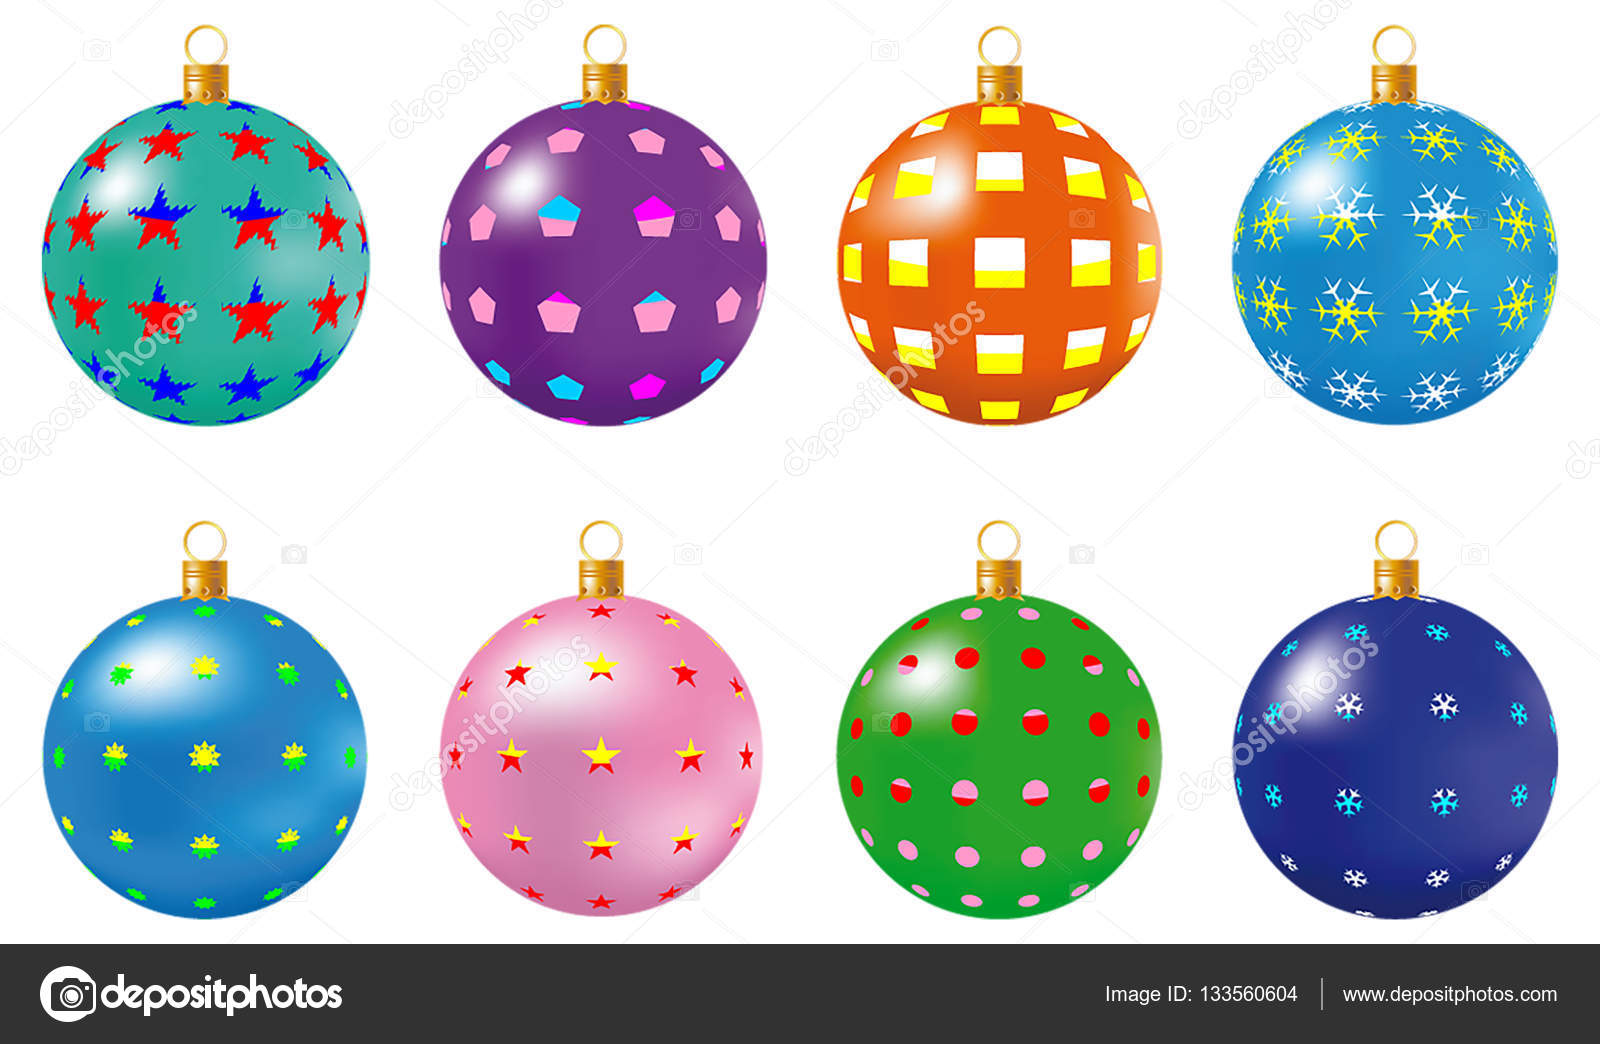 Colorful Christmas Balls.Colorful Christmas Balls Set Of Isolated Realistic